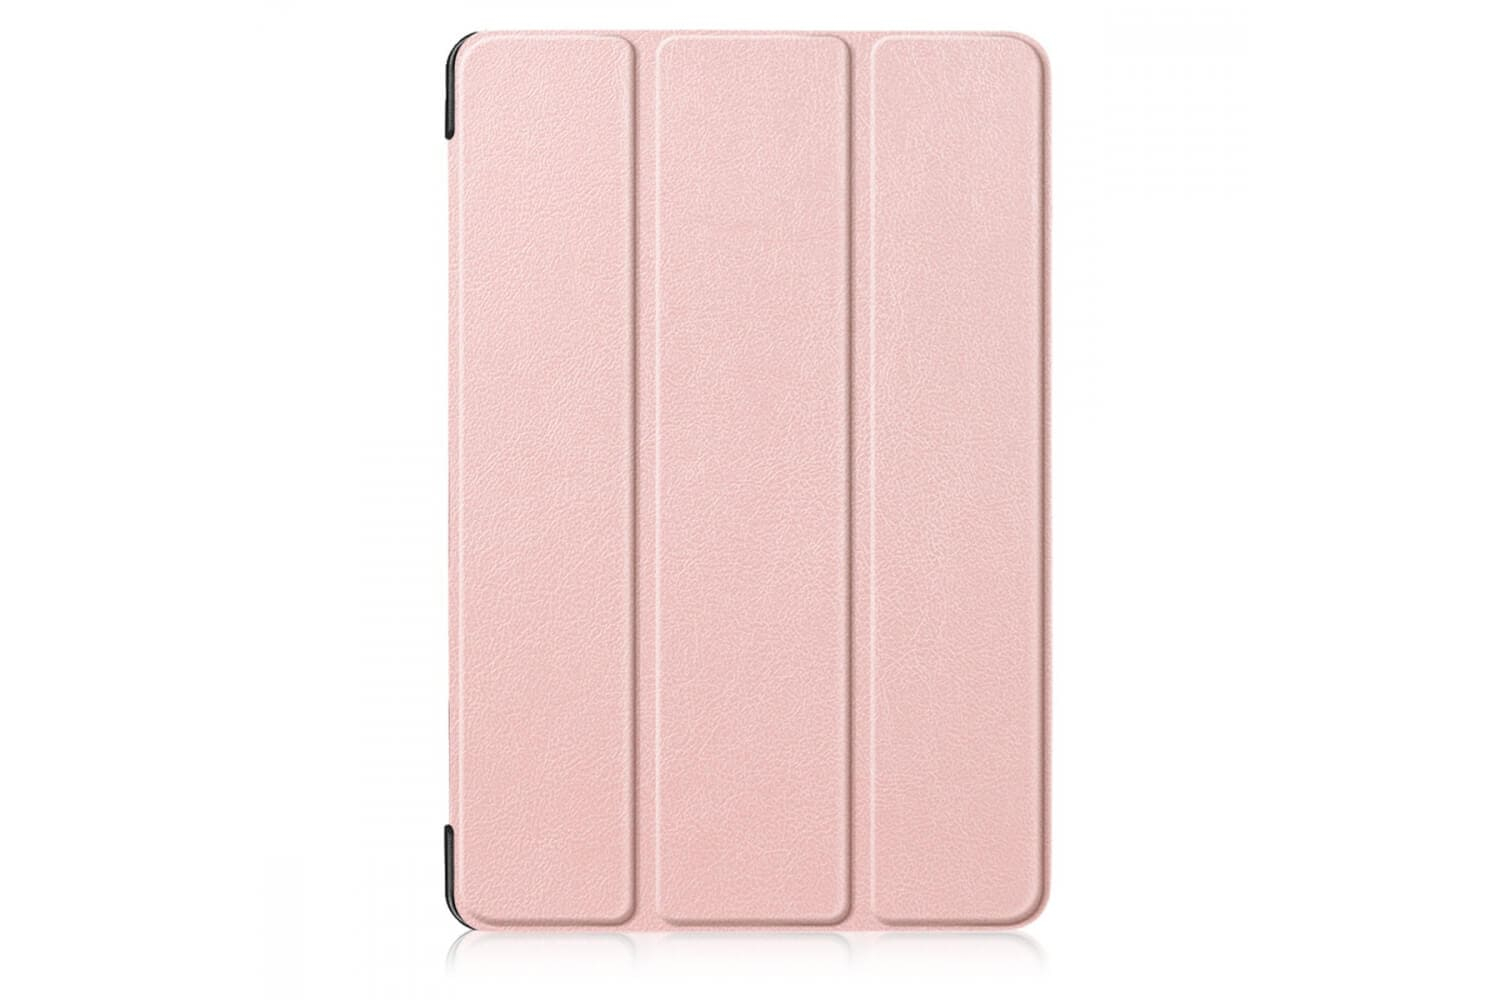 samsung galaxy tab A 10.5 book cover case rose gold